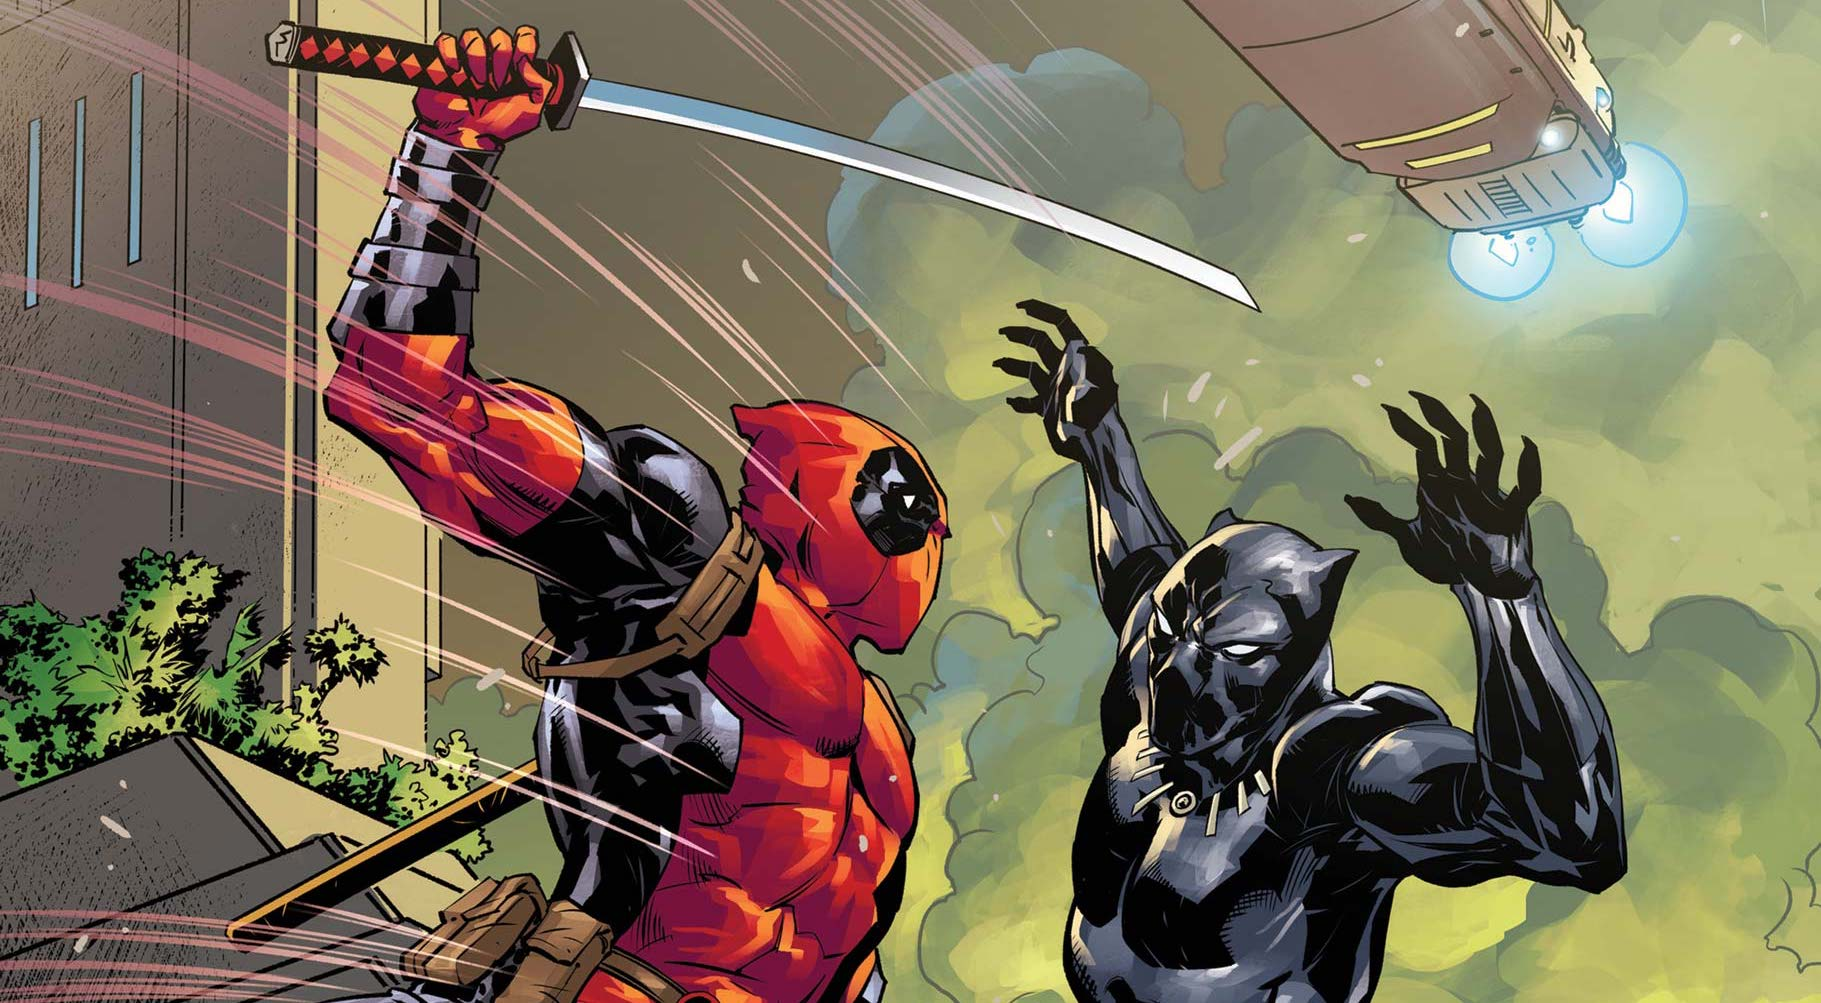 Black Panther vs. Deadpool is turning into Deadpool's best 1-on-1 fight